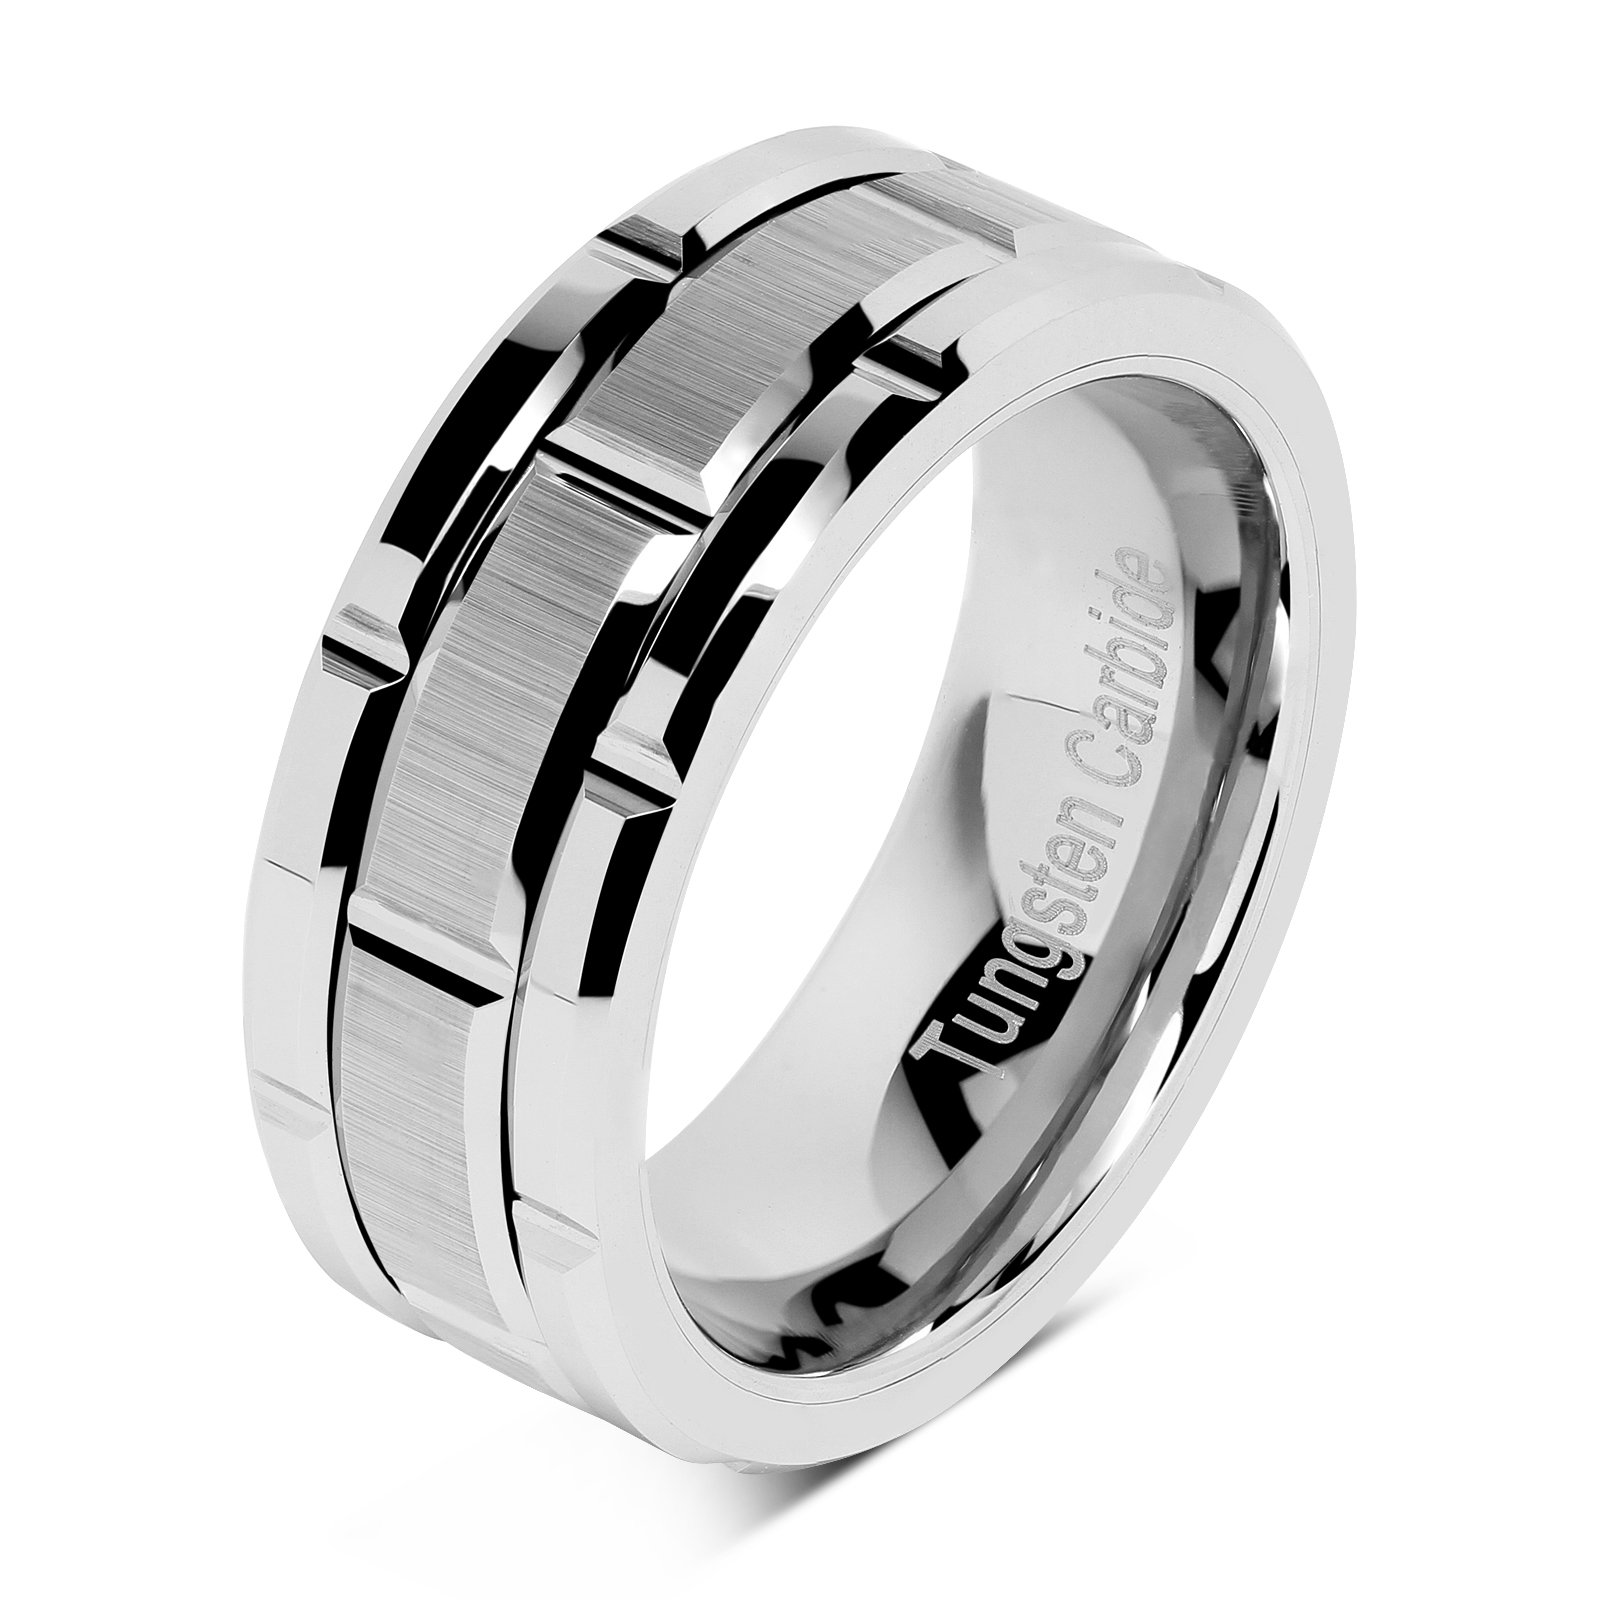 100S JEWELRY Tungsten Rings For Men Wedding Band Silver Brick Pattern Brushed Engagement Promise Size 8-16 (8)